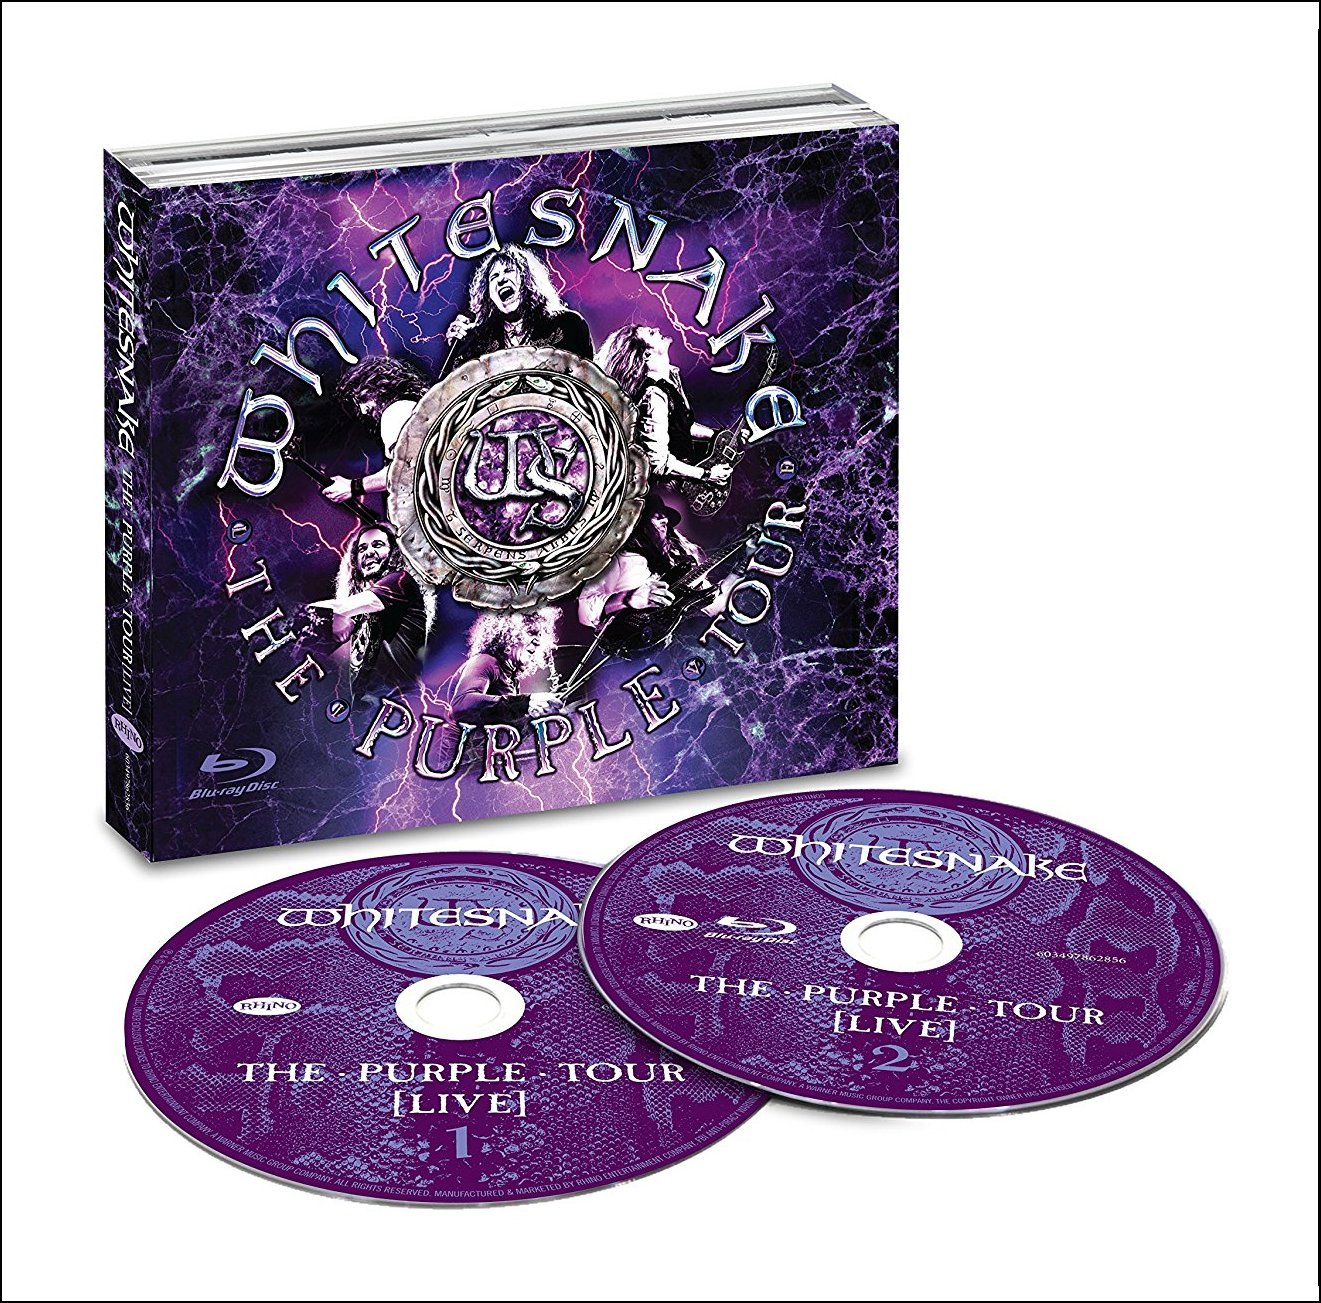 PURPLE TOUR (LIVE) (WBR)-WHITESNAKE